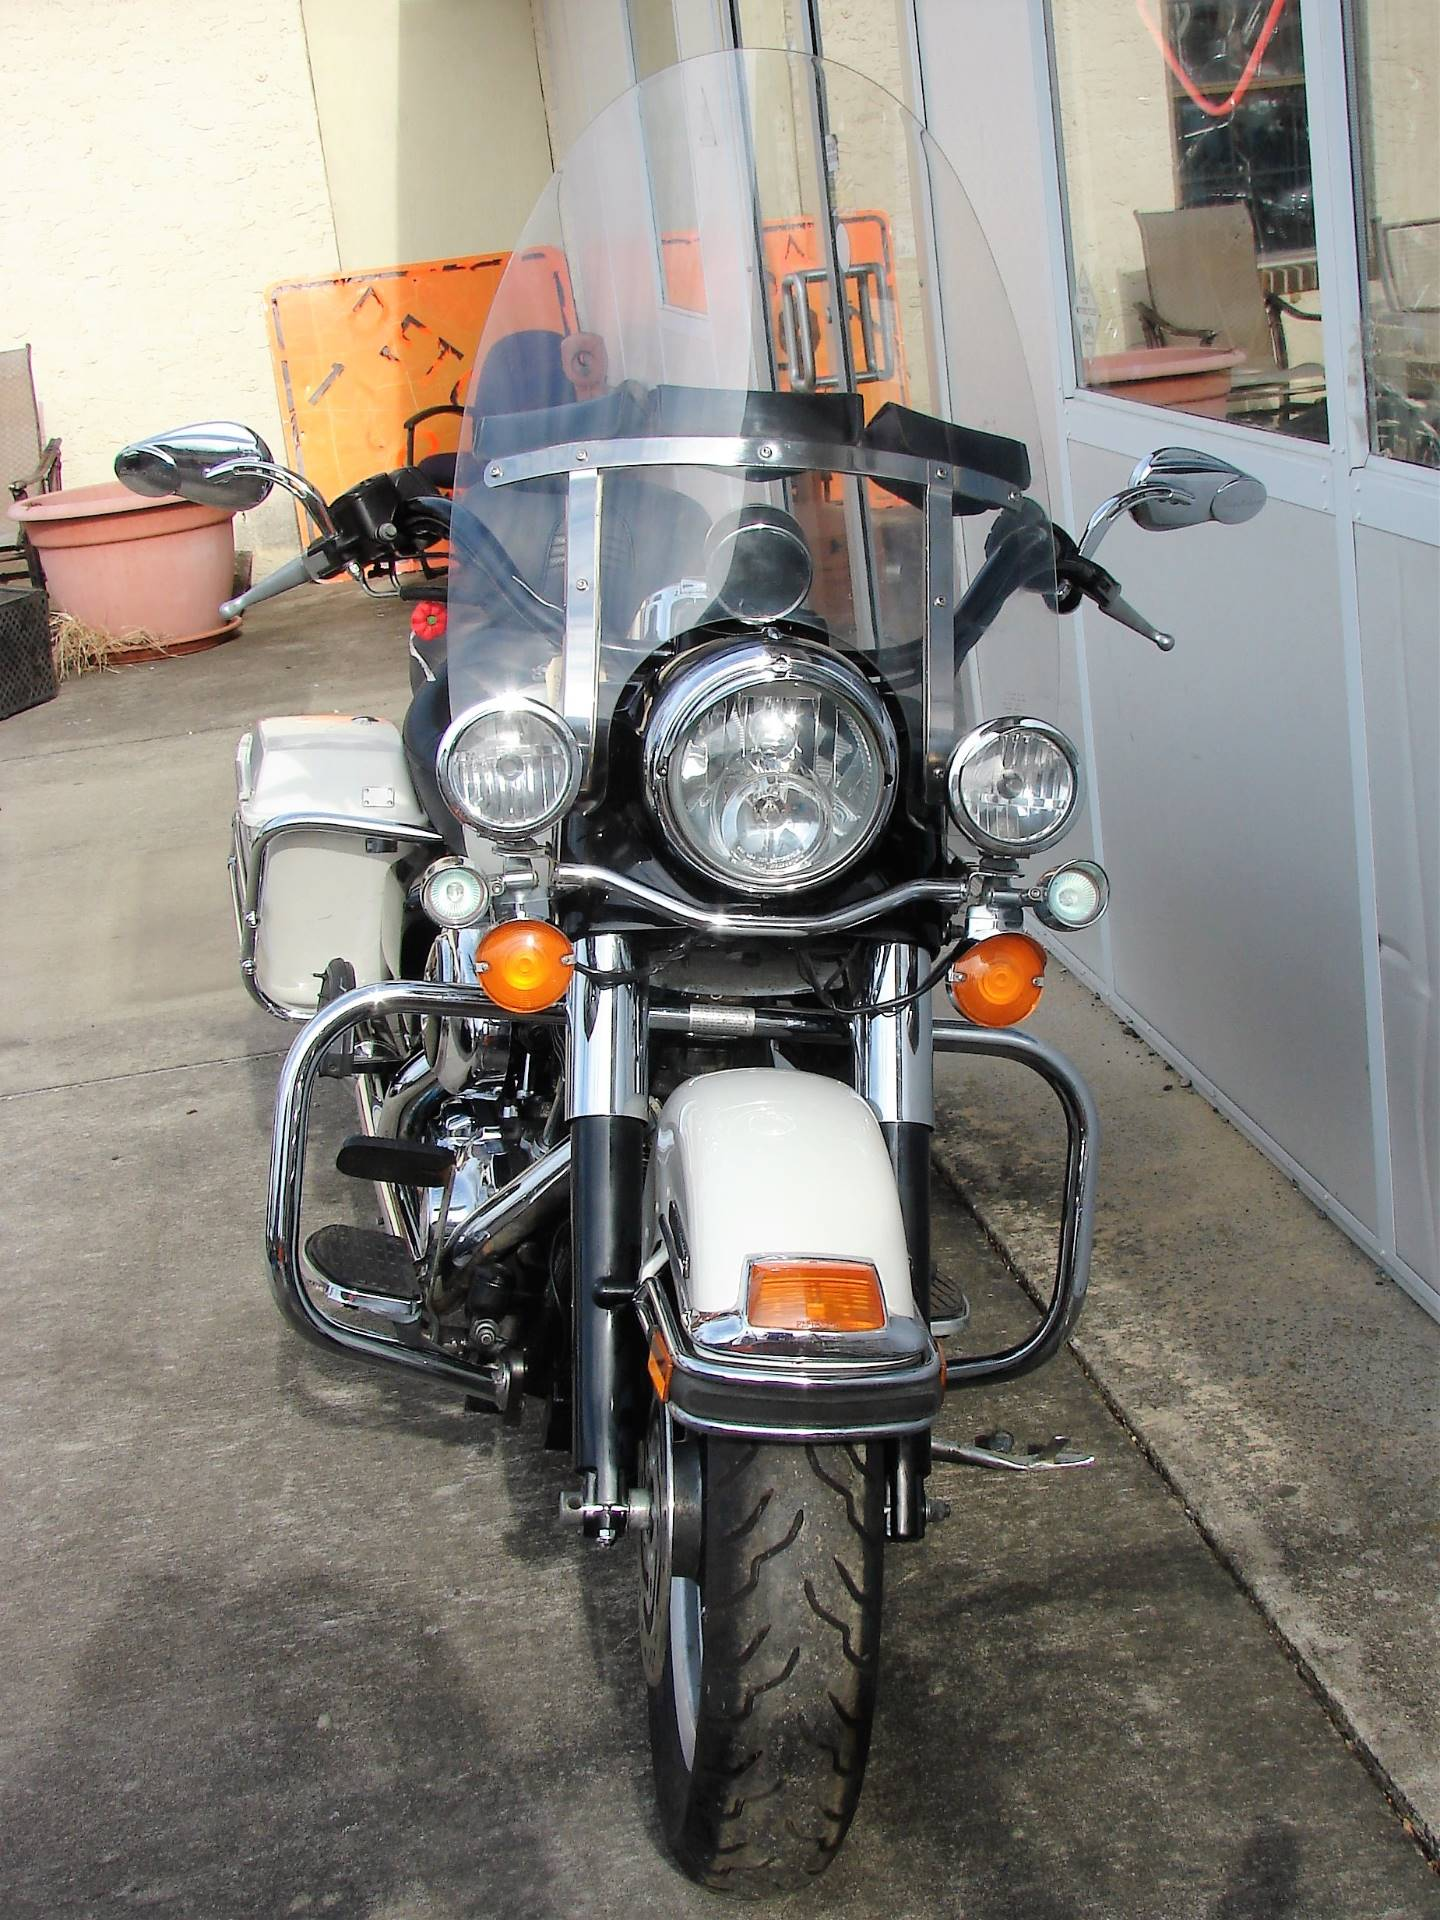 2001 Harley-Davidson FLHTPI Electra Glide (Police Special) - WHITE in Williamstown, New Jersey - Photo 11